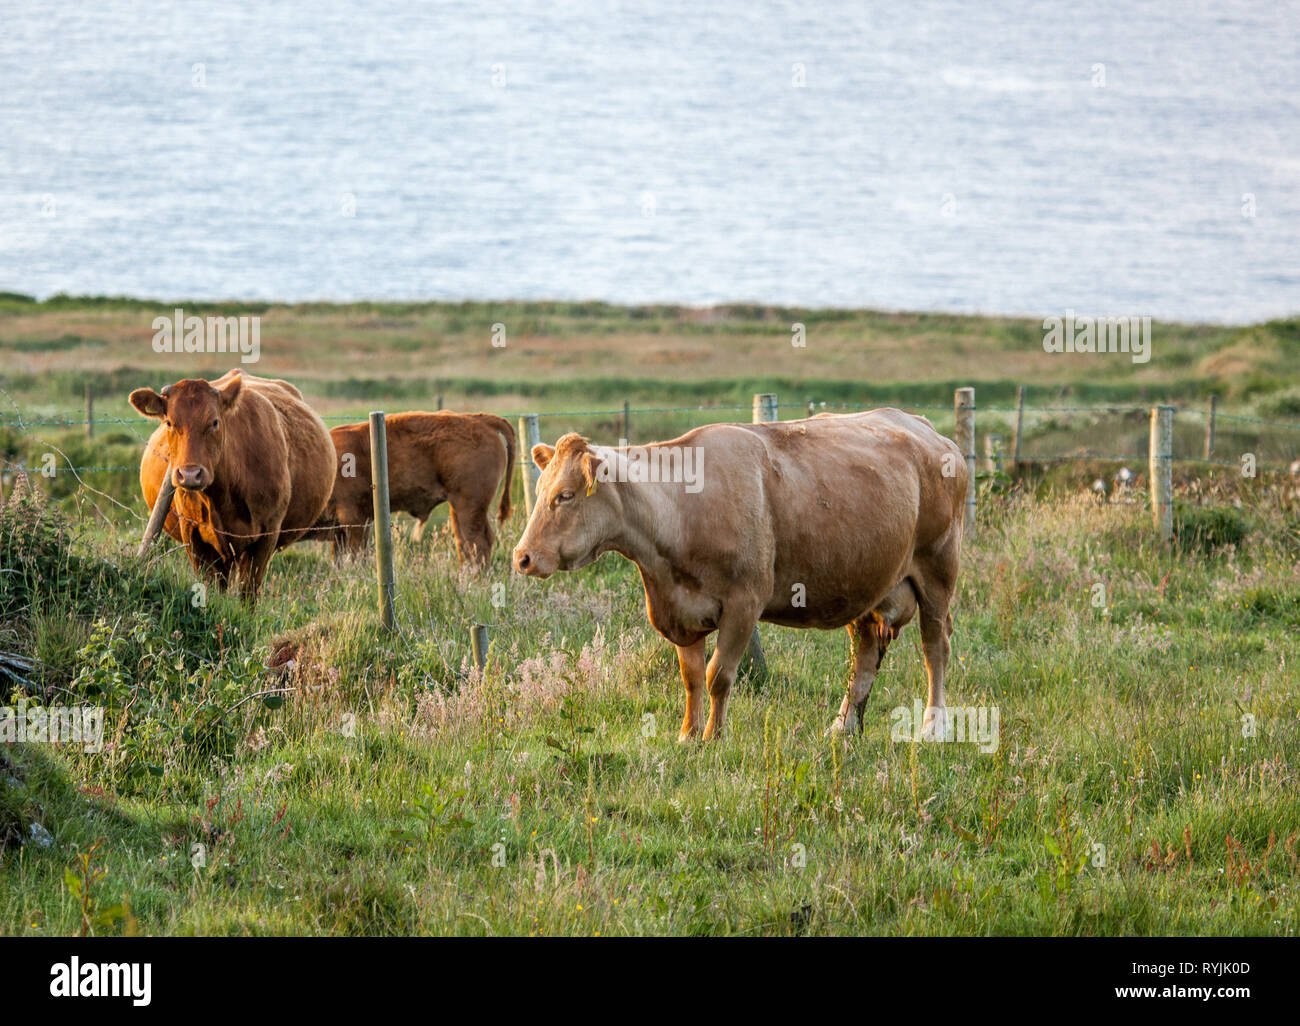 Dursey Island, Cork, Ireland. 18th June, 2016  Cattle on a pasture  in the townland of Kilmichael on Dursey Island, Co. Cork, Ireland. Stock Photo